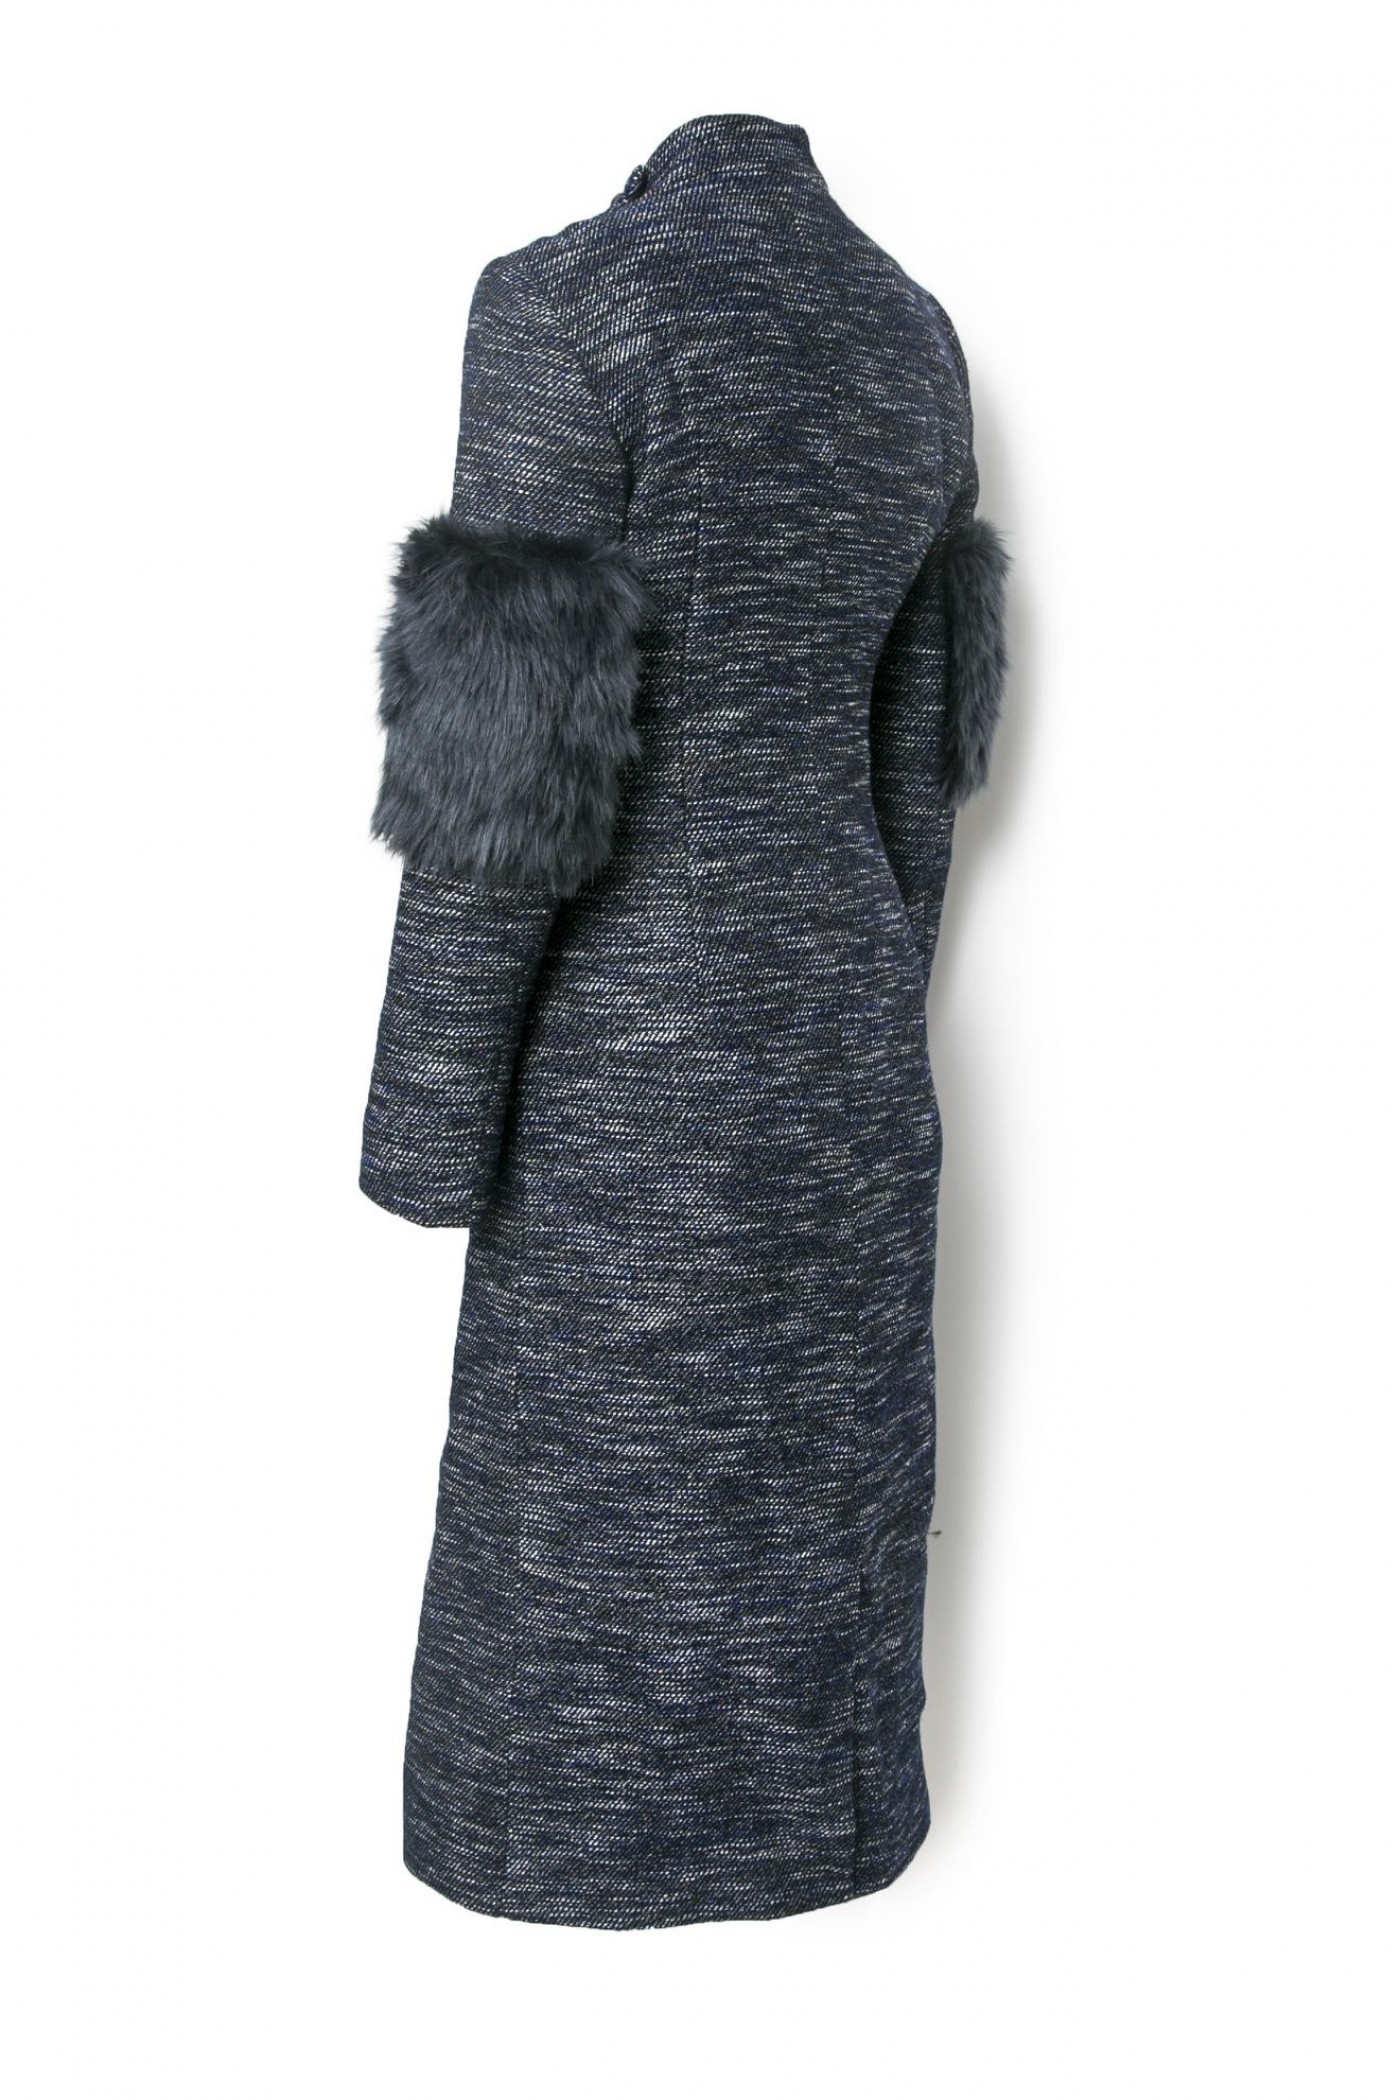 Textured Coat with Fur Sleeve Detail